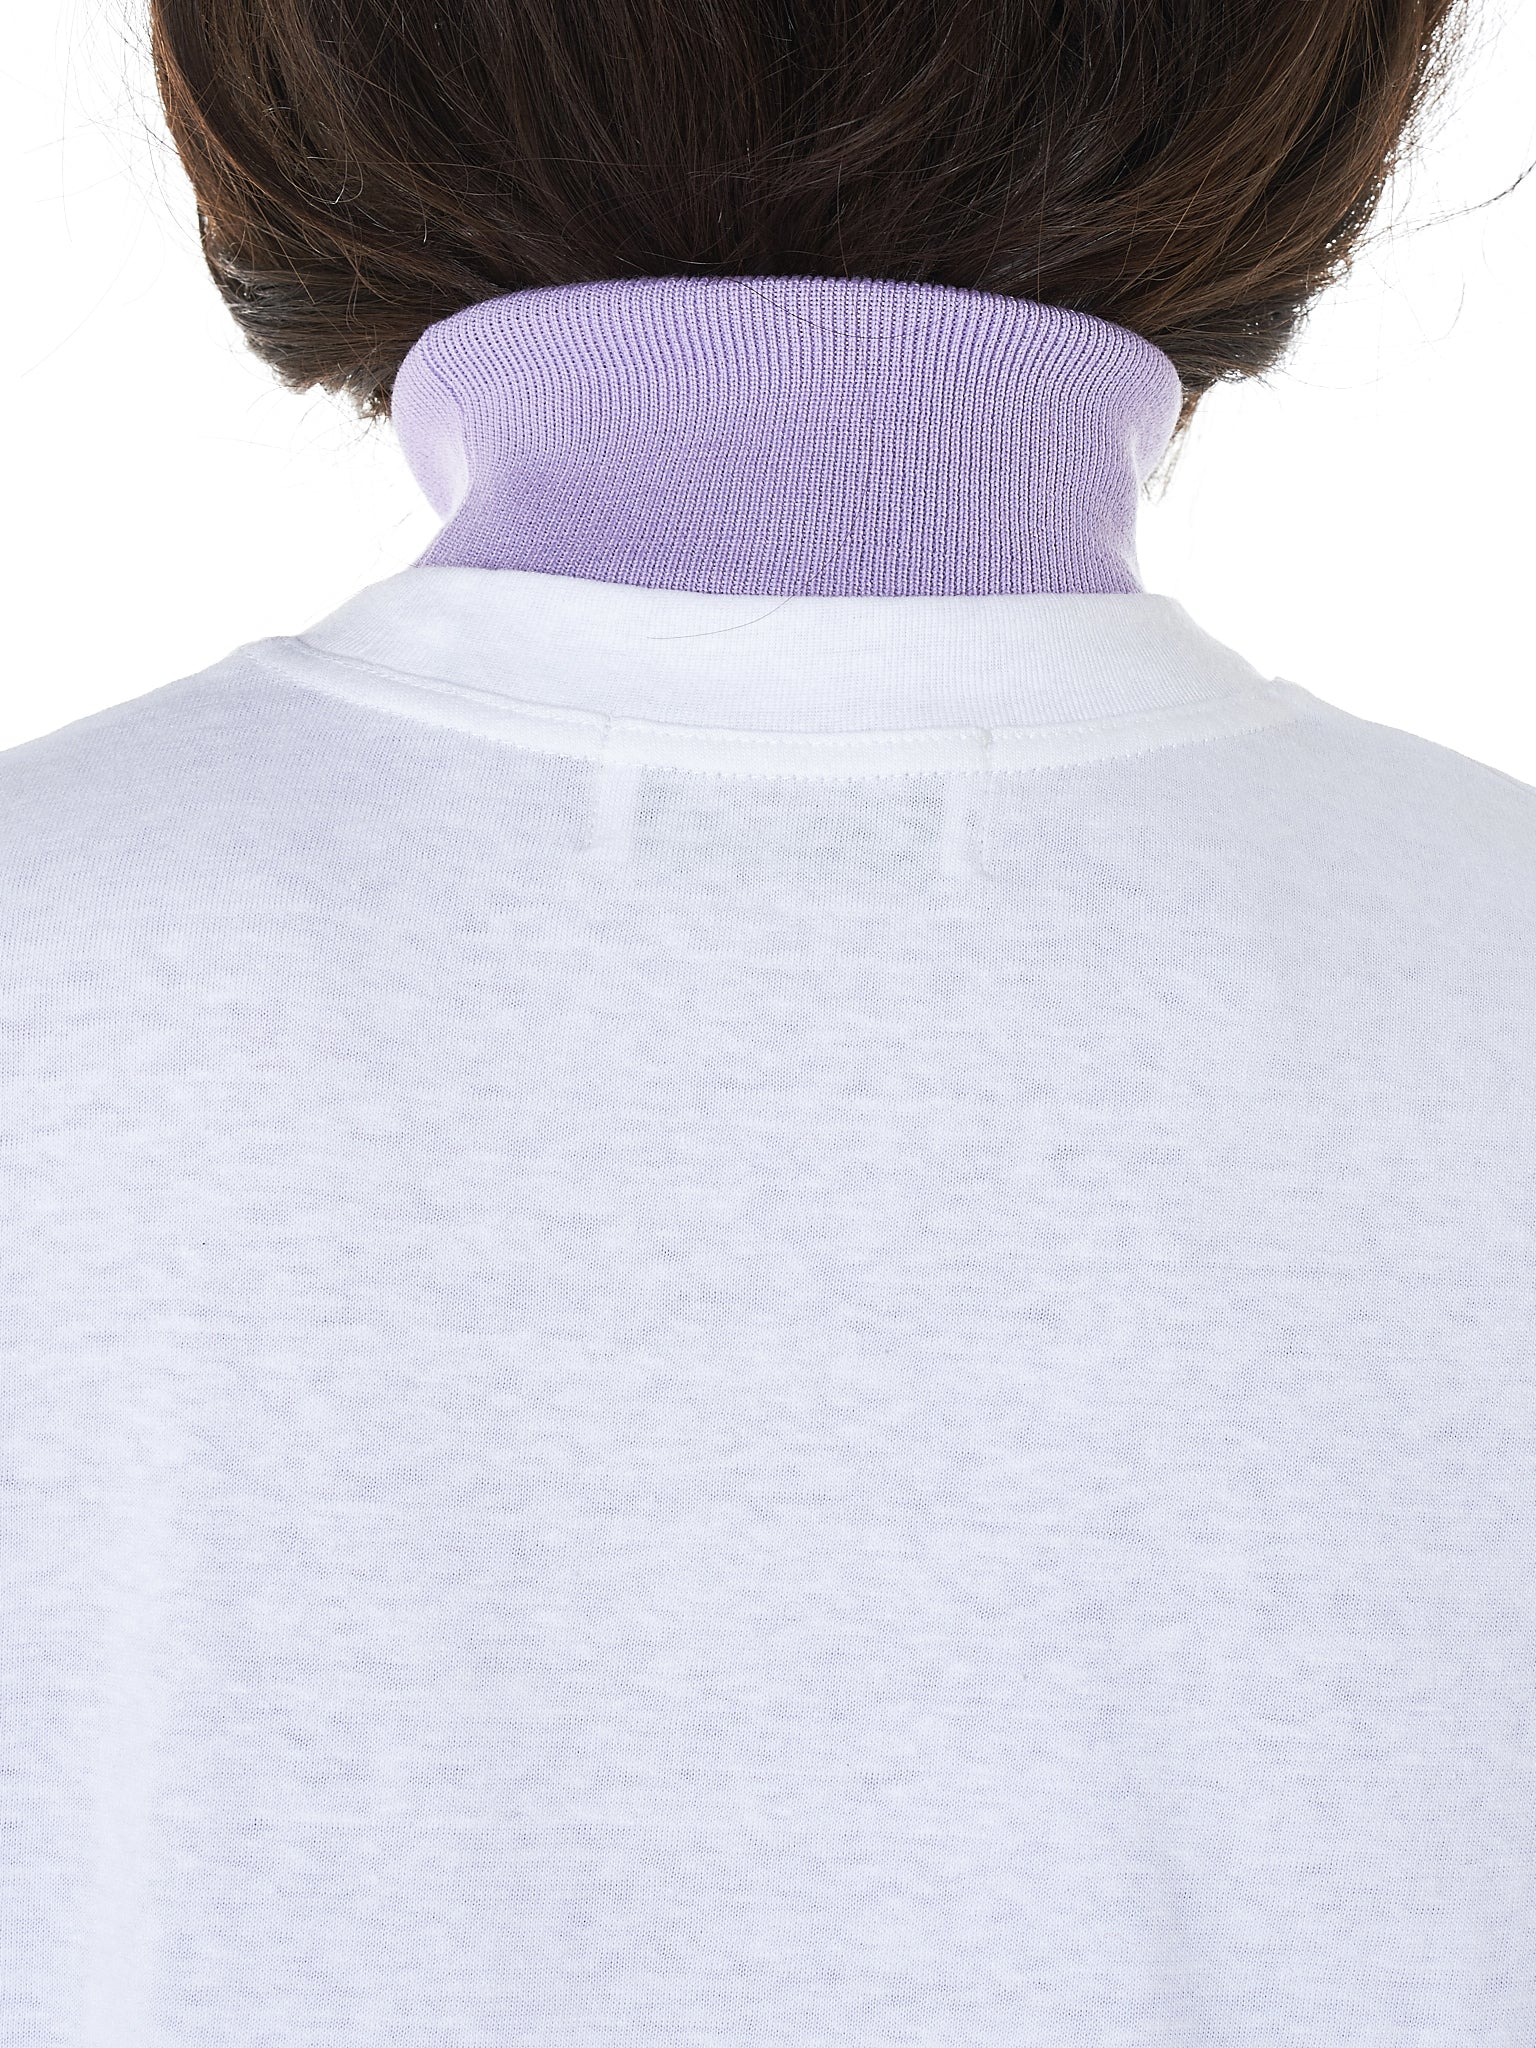 Ambush Tee Shirt - Hlorenzo Back Detail